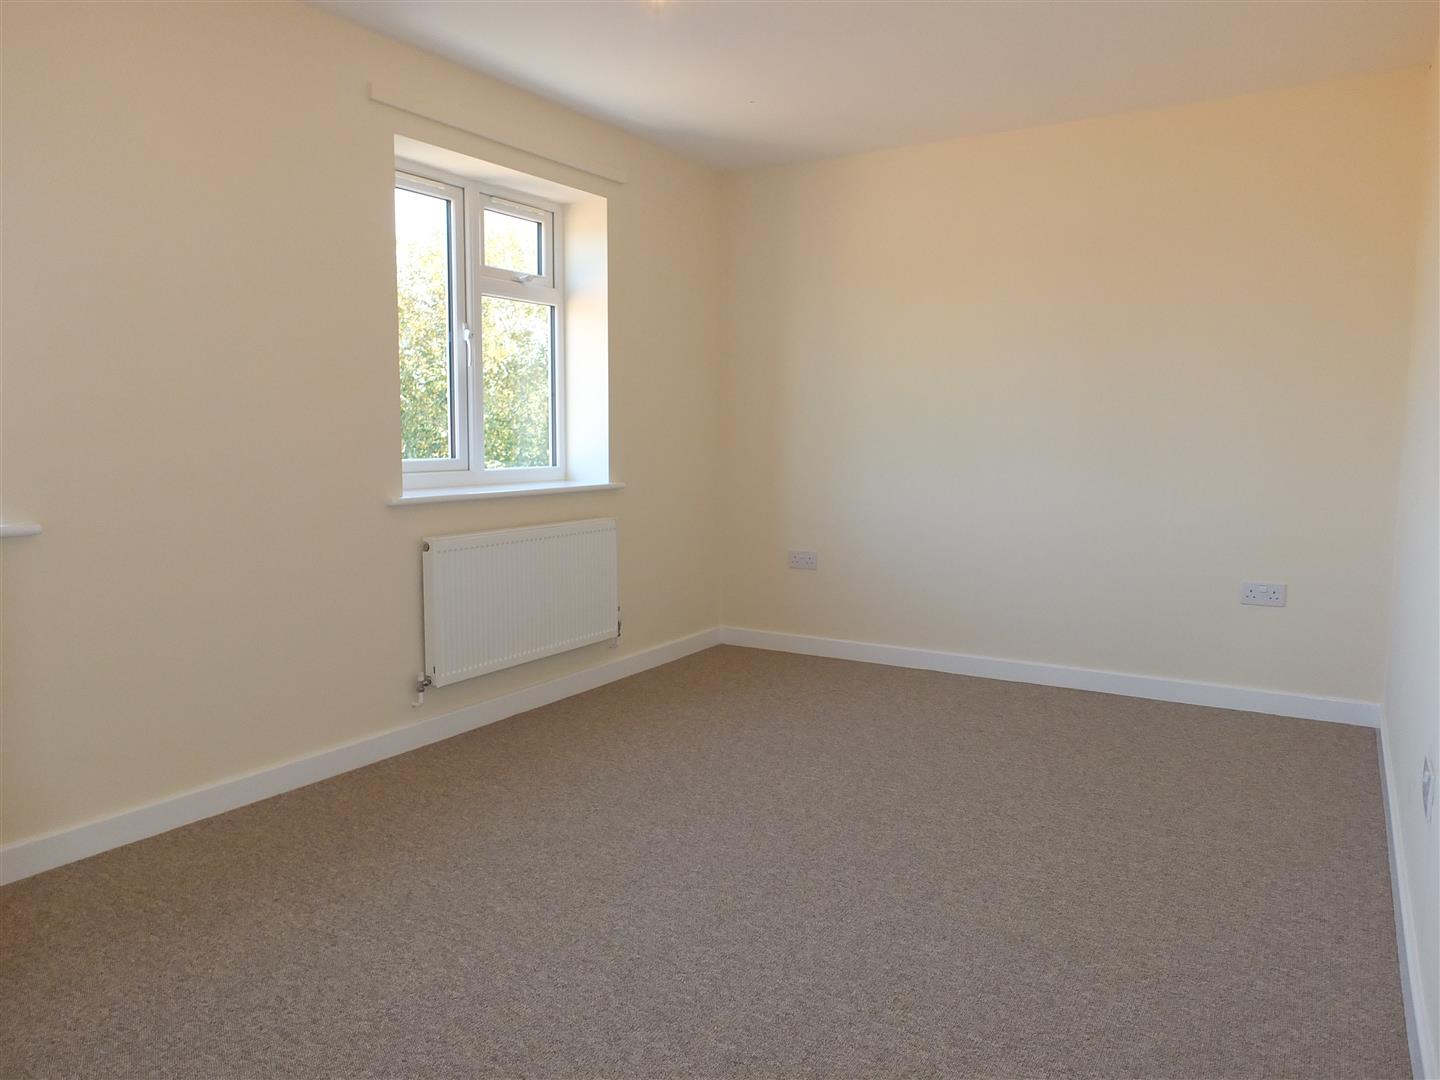 2 bed house to rent in Long Sutton Spalding, PE12 9LE 5